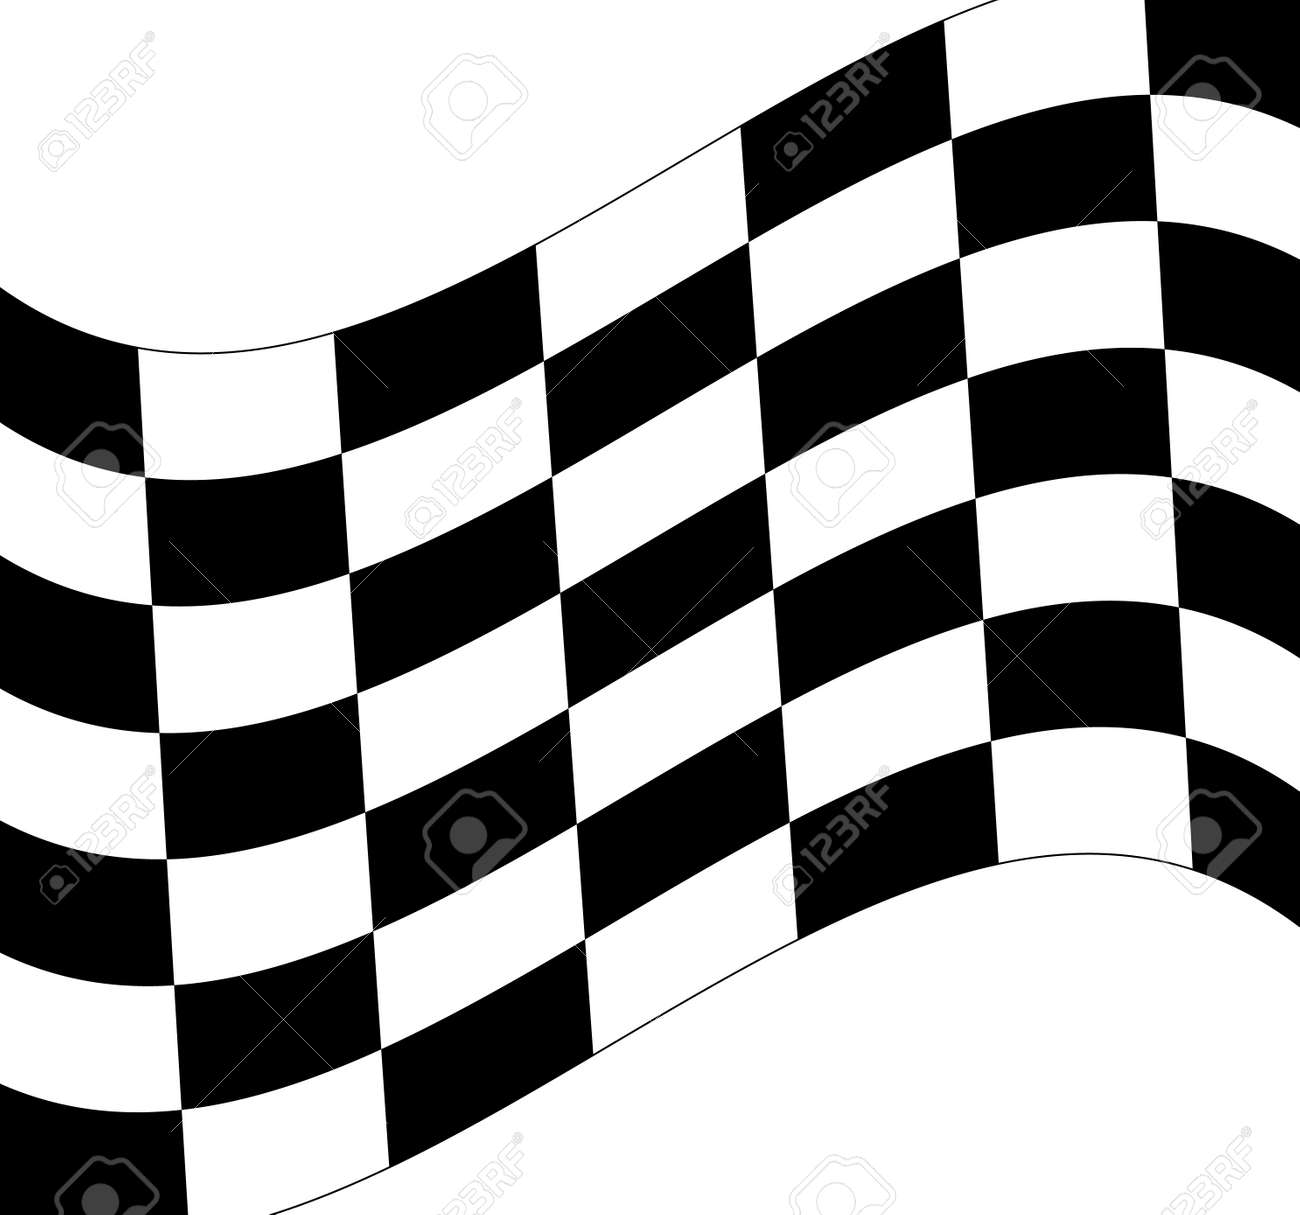 Waving black and white checkered flag on white background vector stock vector 2802312